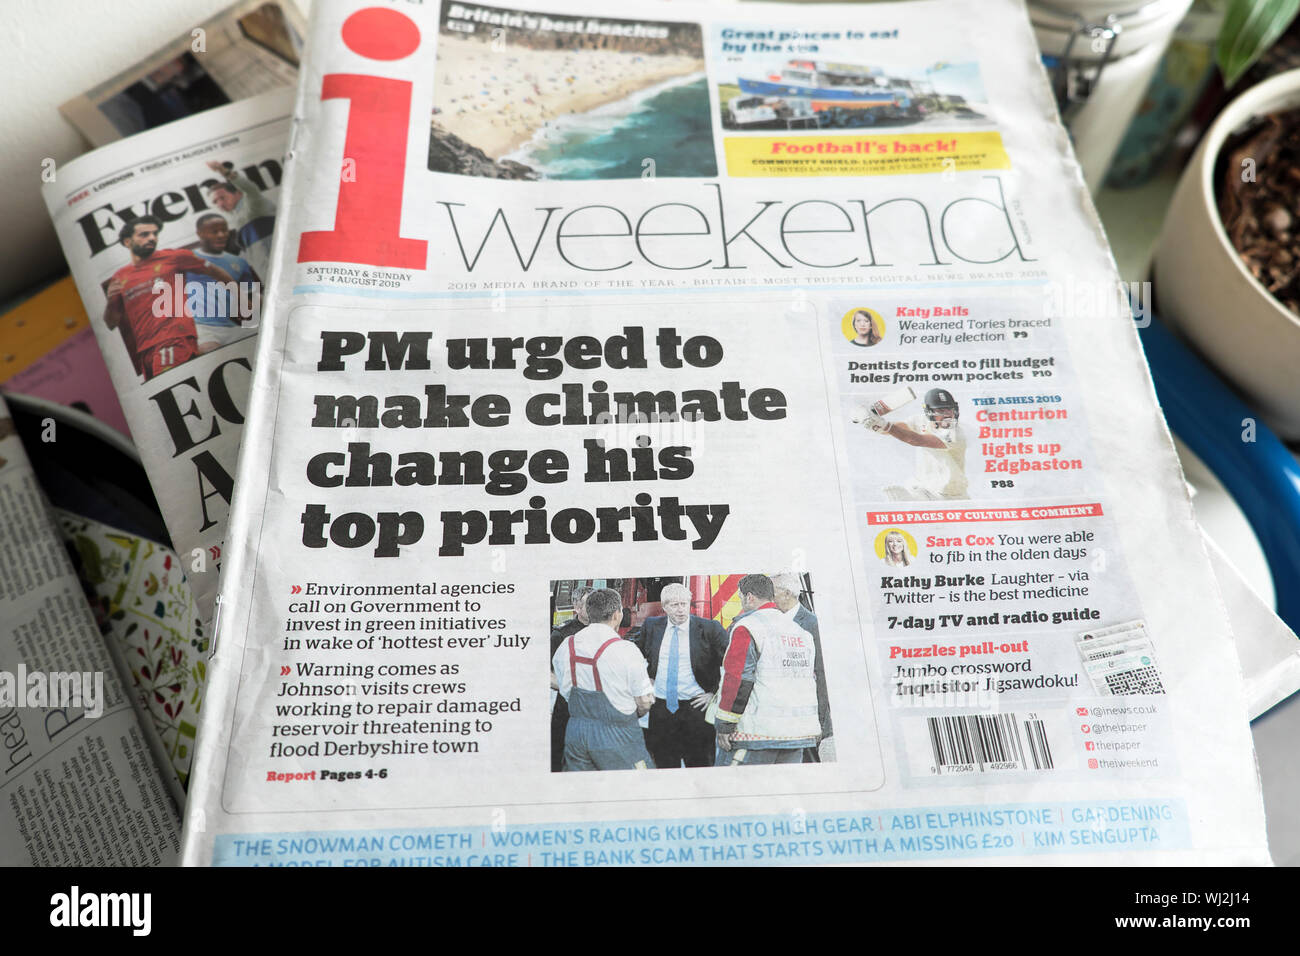 """Boris Johnson """"PM urged to make climate change his top priority"""" front page i weekend newspaper headline 3 - 4 August 2019 London England UK Stock Photo"""